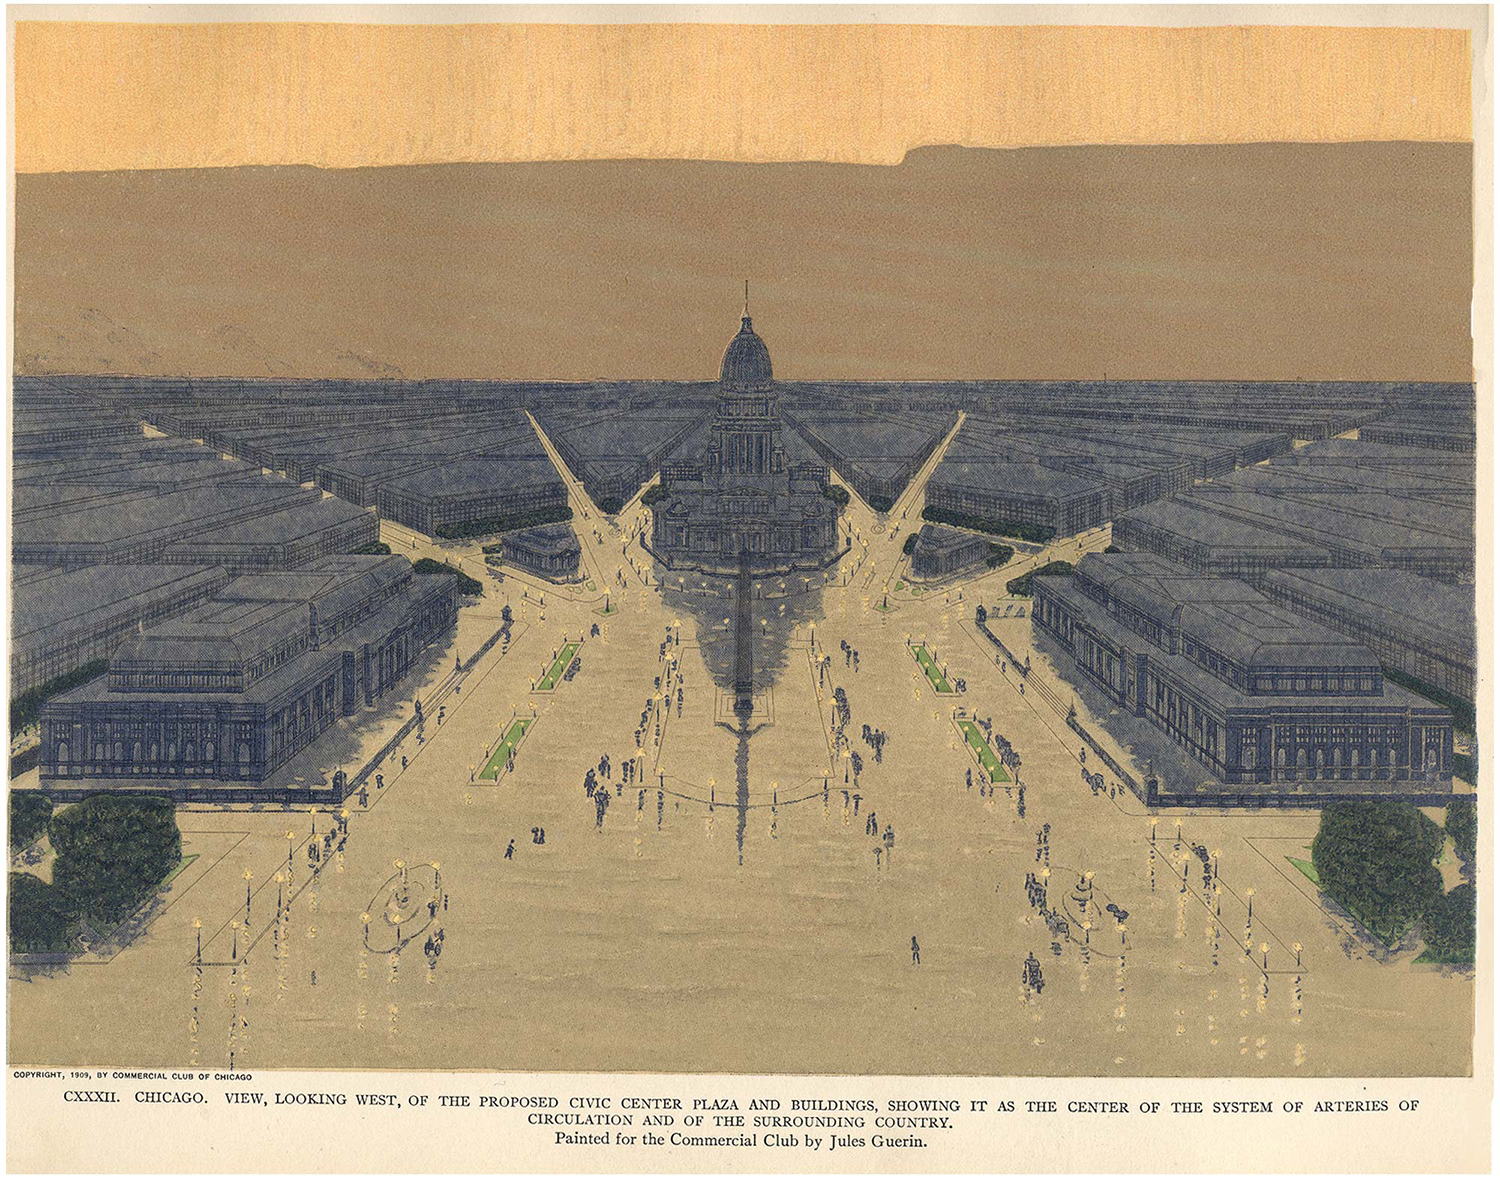 CXXXII: View of proposed Civic Center Plaza and City Hall, looking west